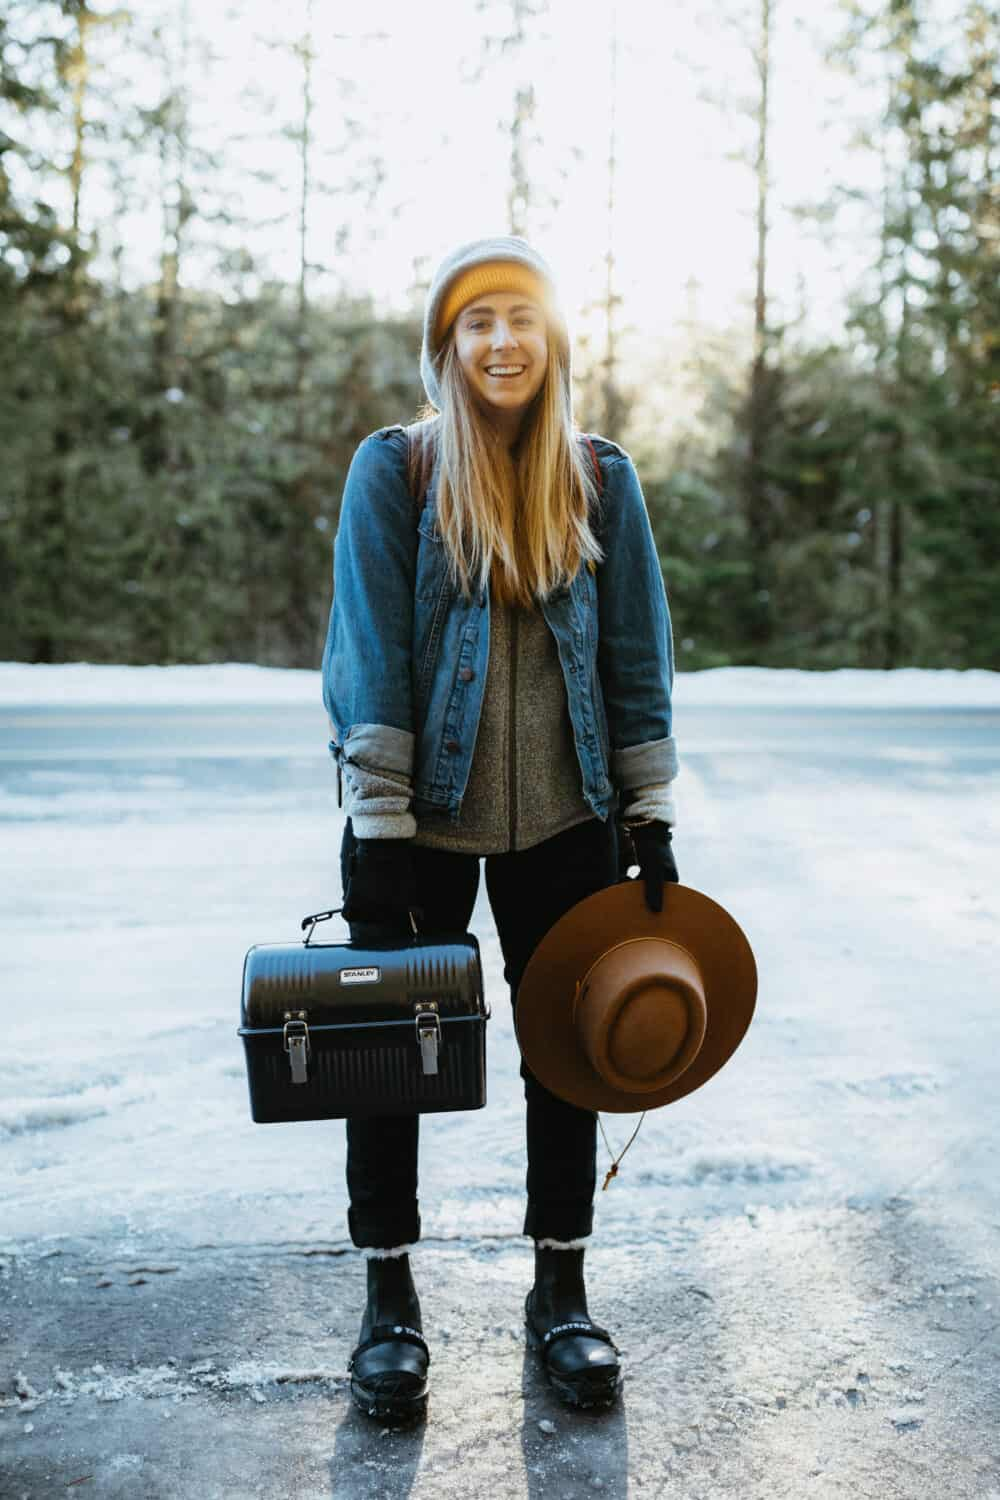 Emily Mandagie packing for a hot springs trip. Lunch box and hat